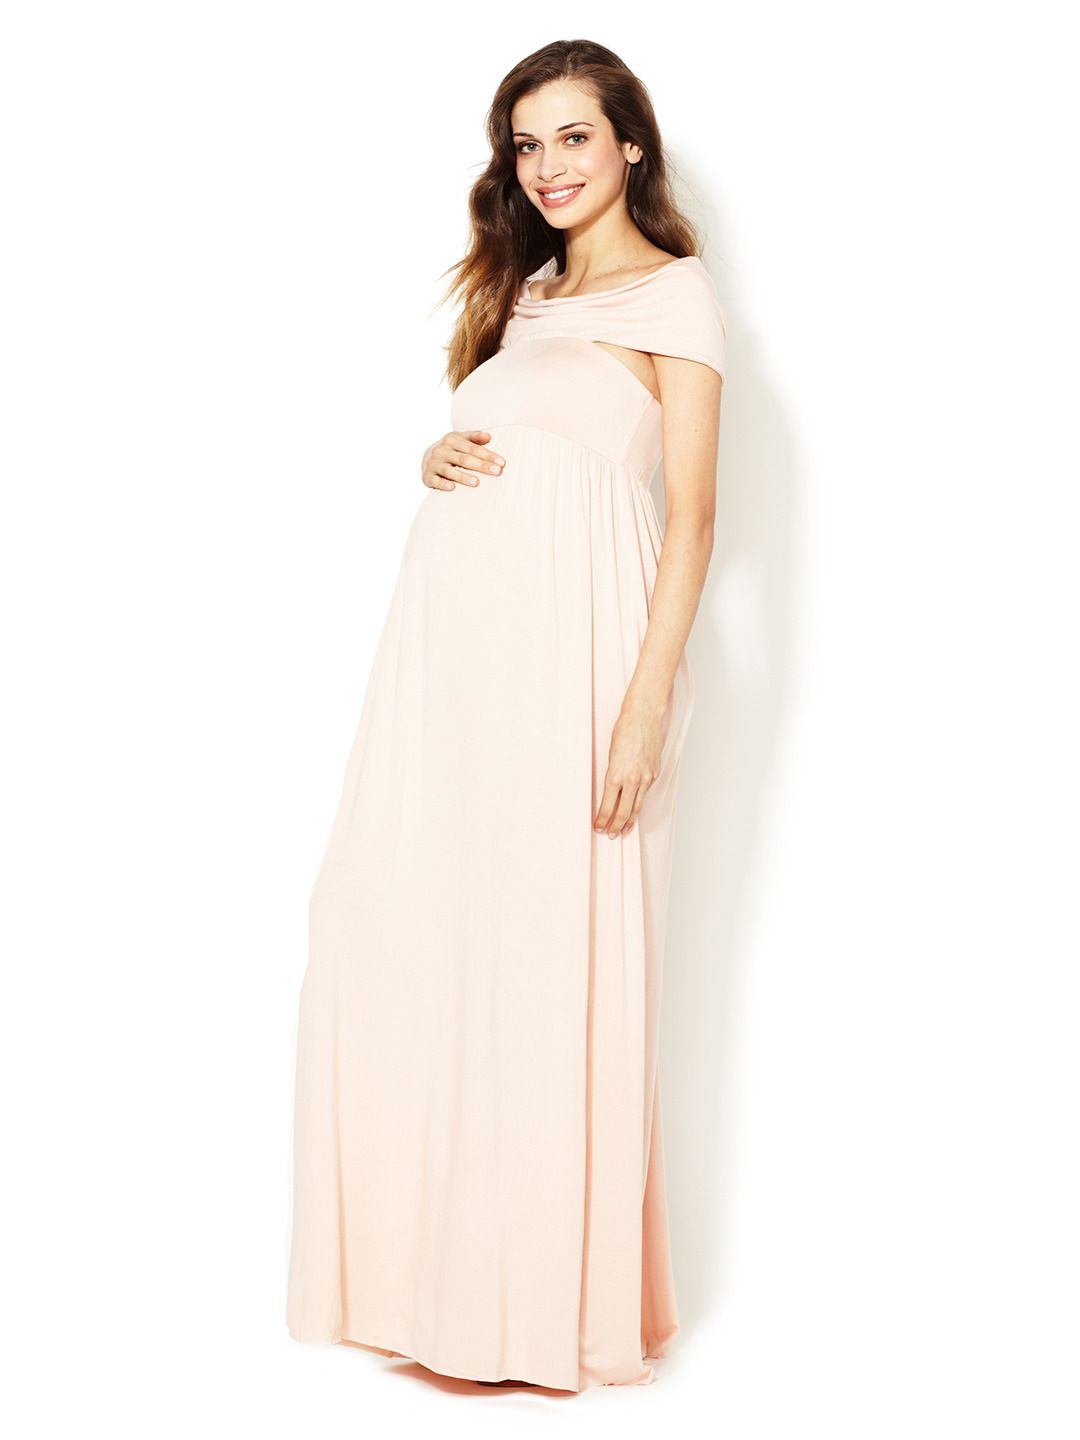 Midsummer dress by rachel pally maternity at gilt her maternity midsummer dress by rachel pally maternity at gilt ombrellifo Image collections